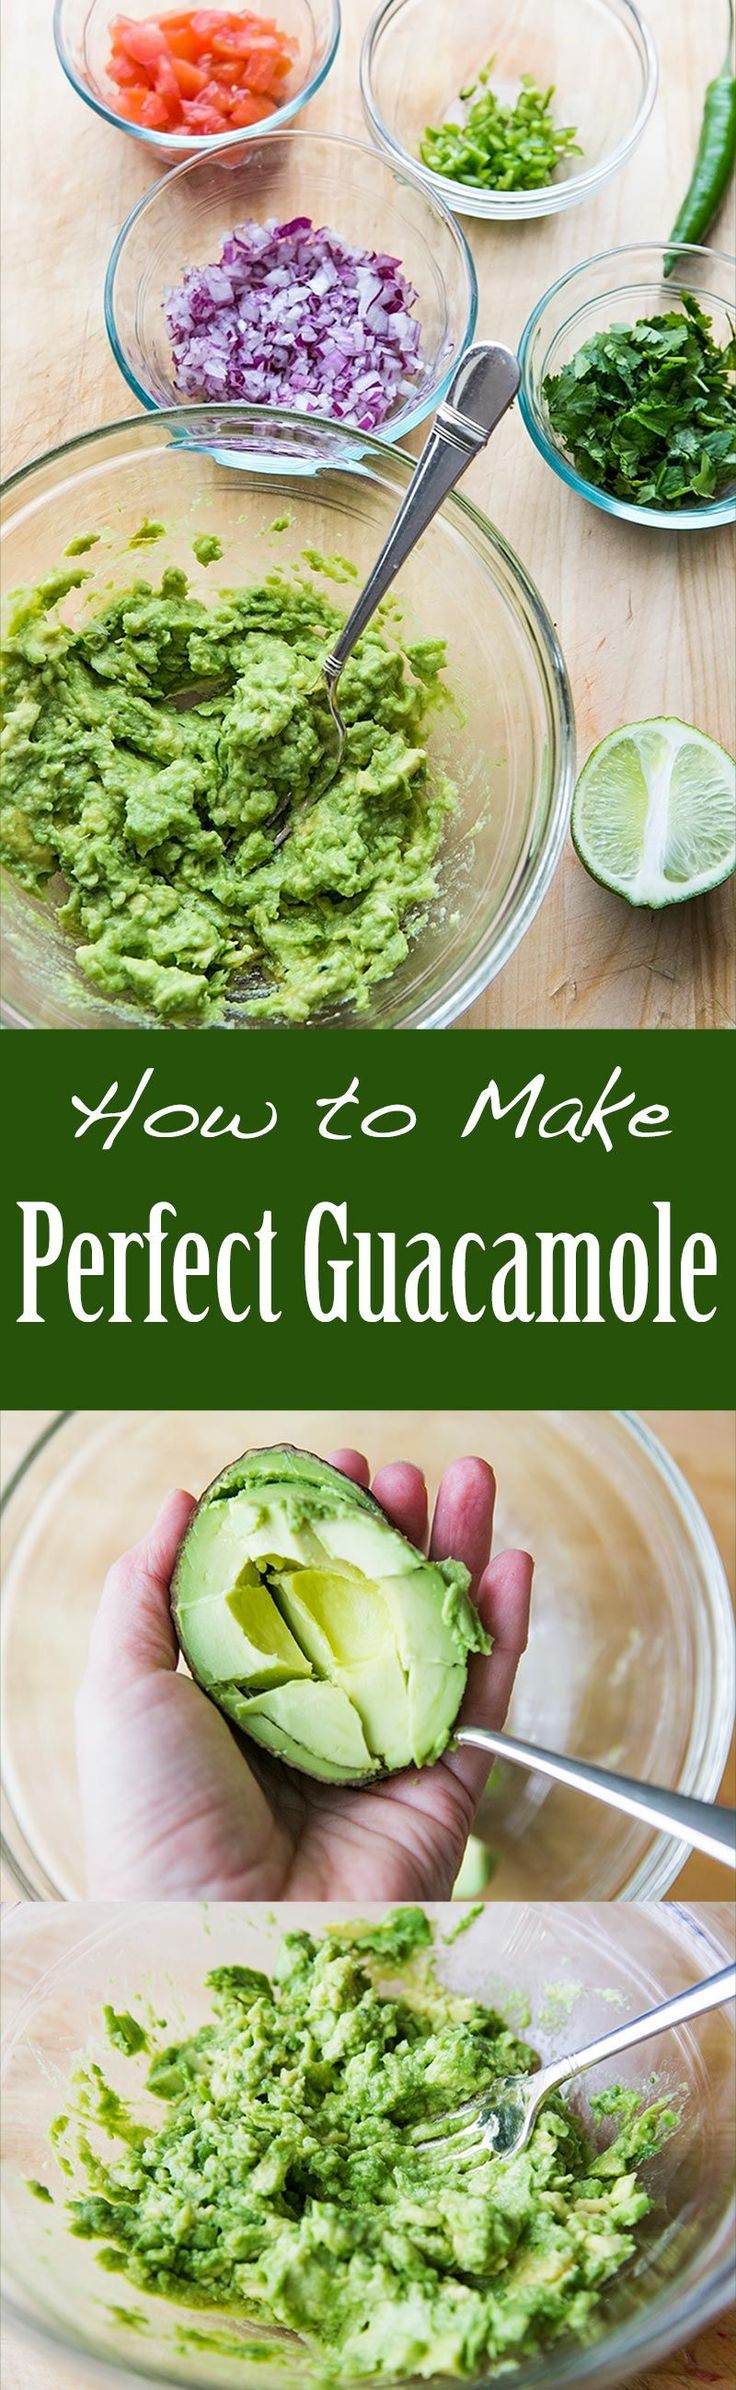 BEST guacamole ever! So EASY to make with ripe avocados, salt, serrano chiles, cilantro and lime. On SimplyRecipes.com #SuperBowl